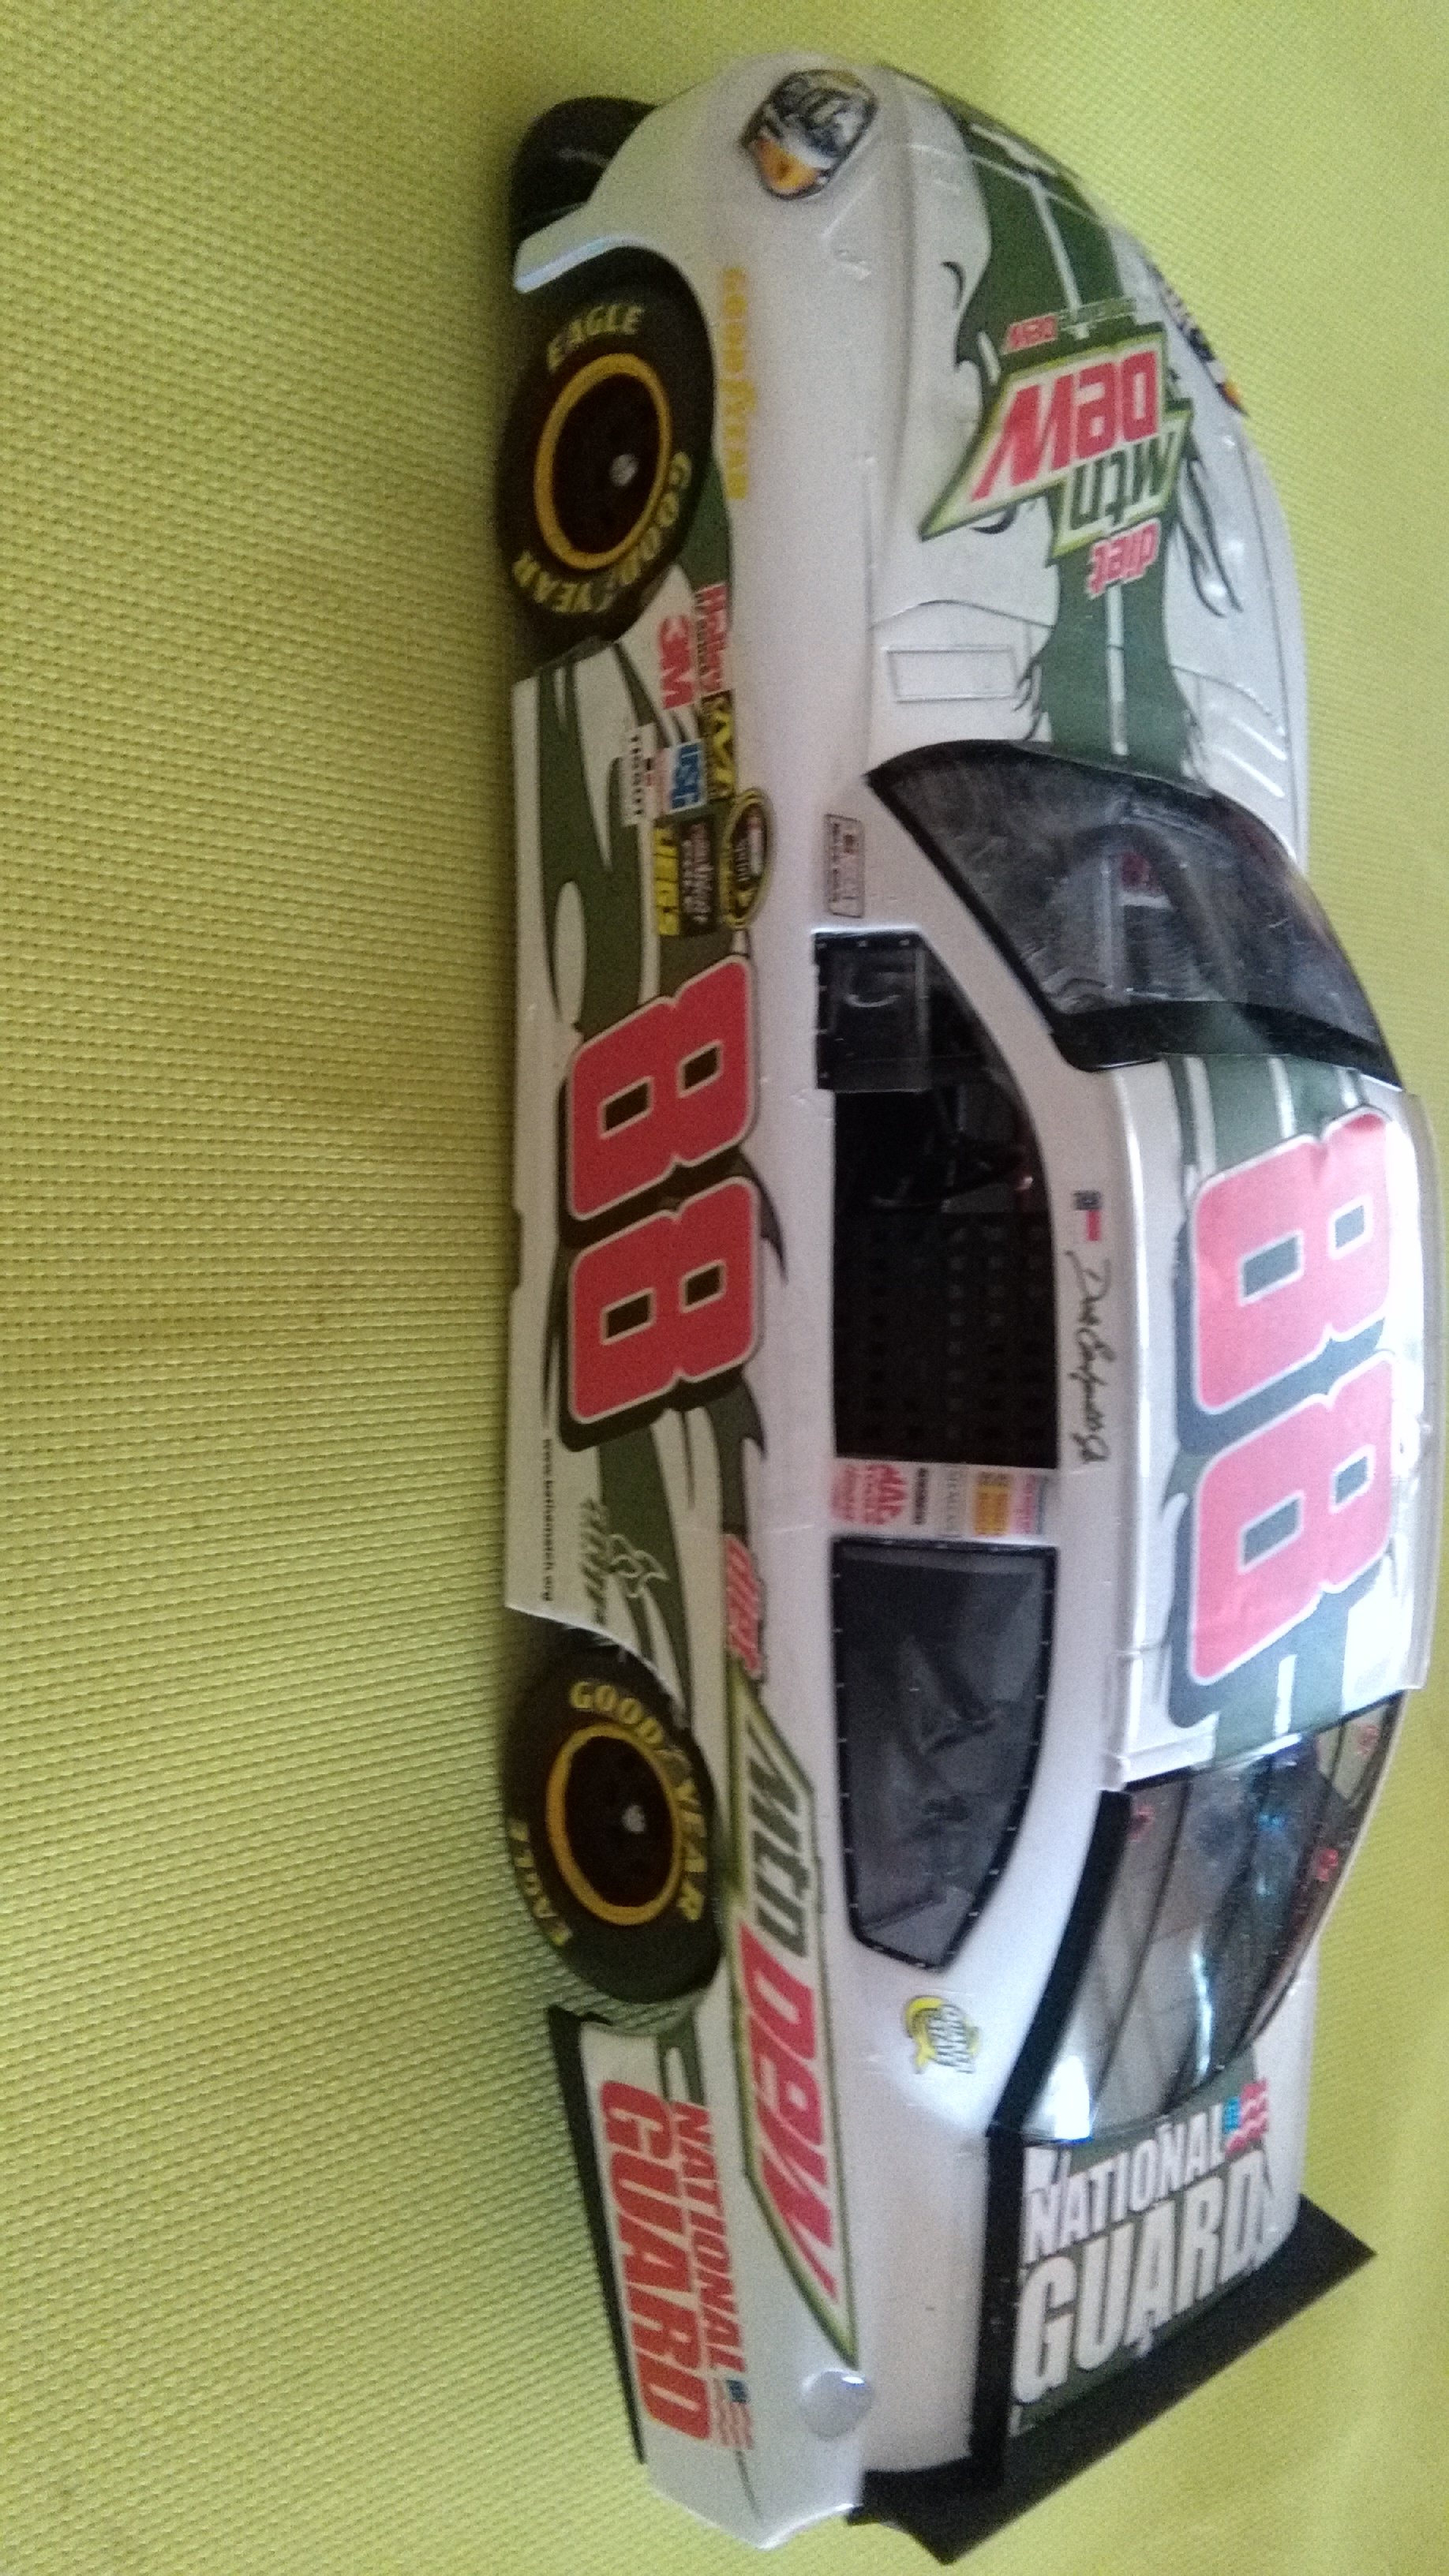 Chevy Impala 2010 #88 Earnhardt jr Mountain dew diet 512481IMG20160320150407